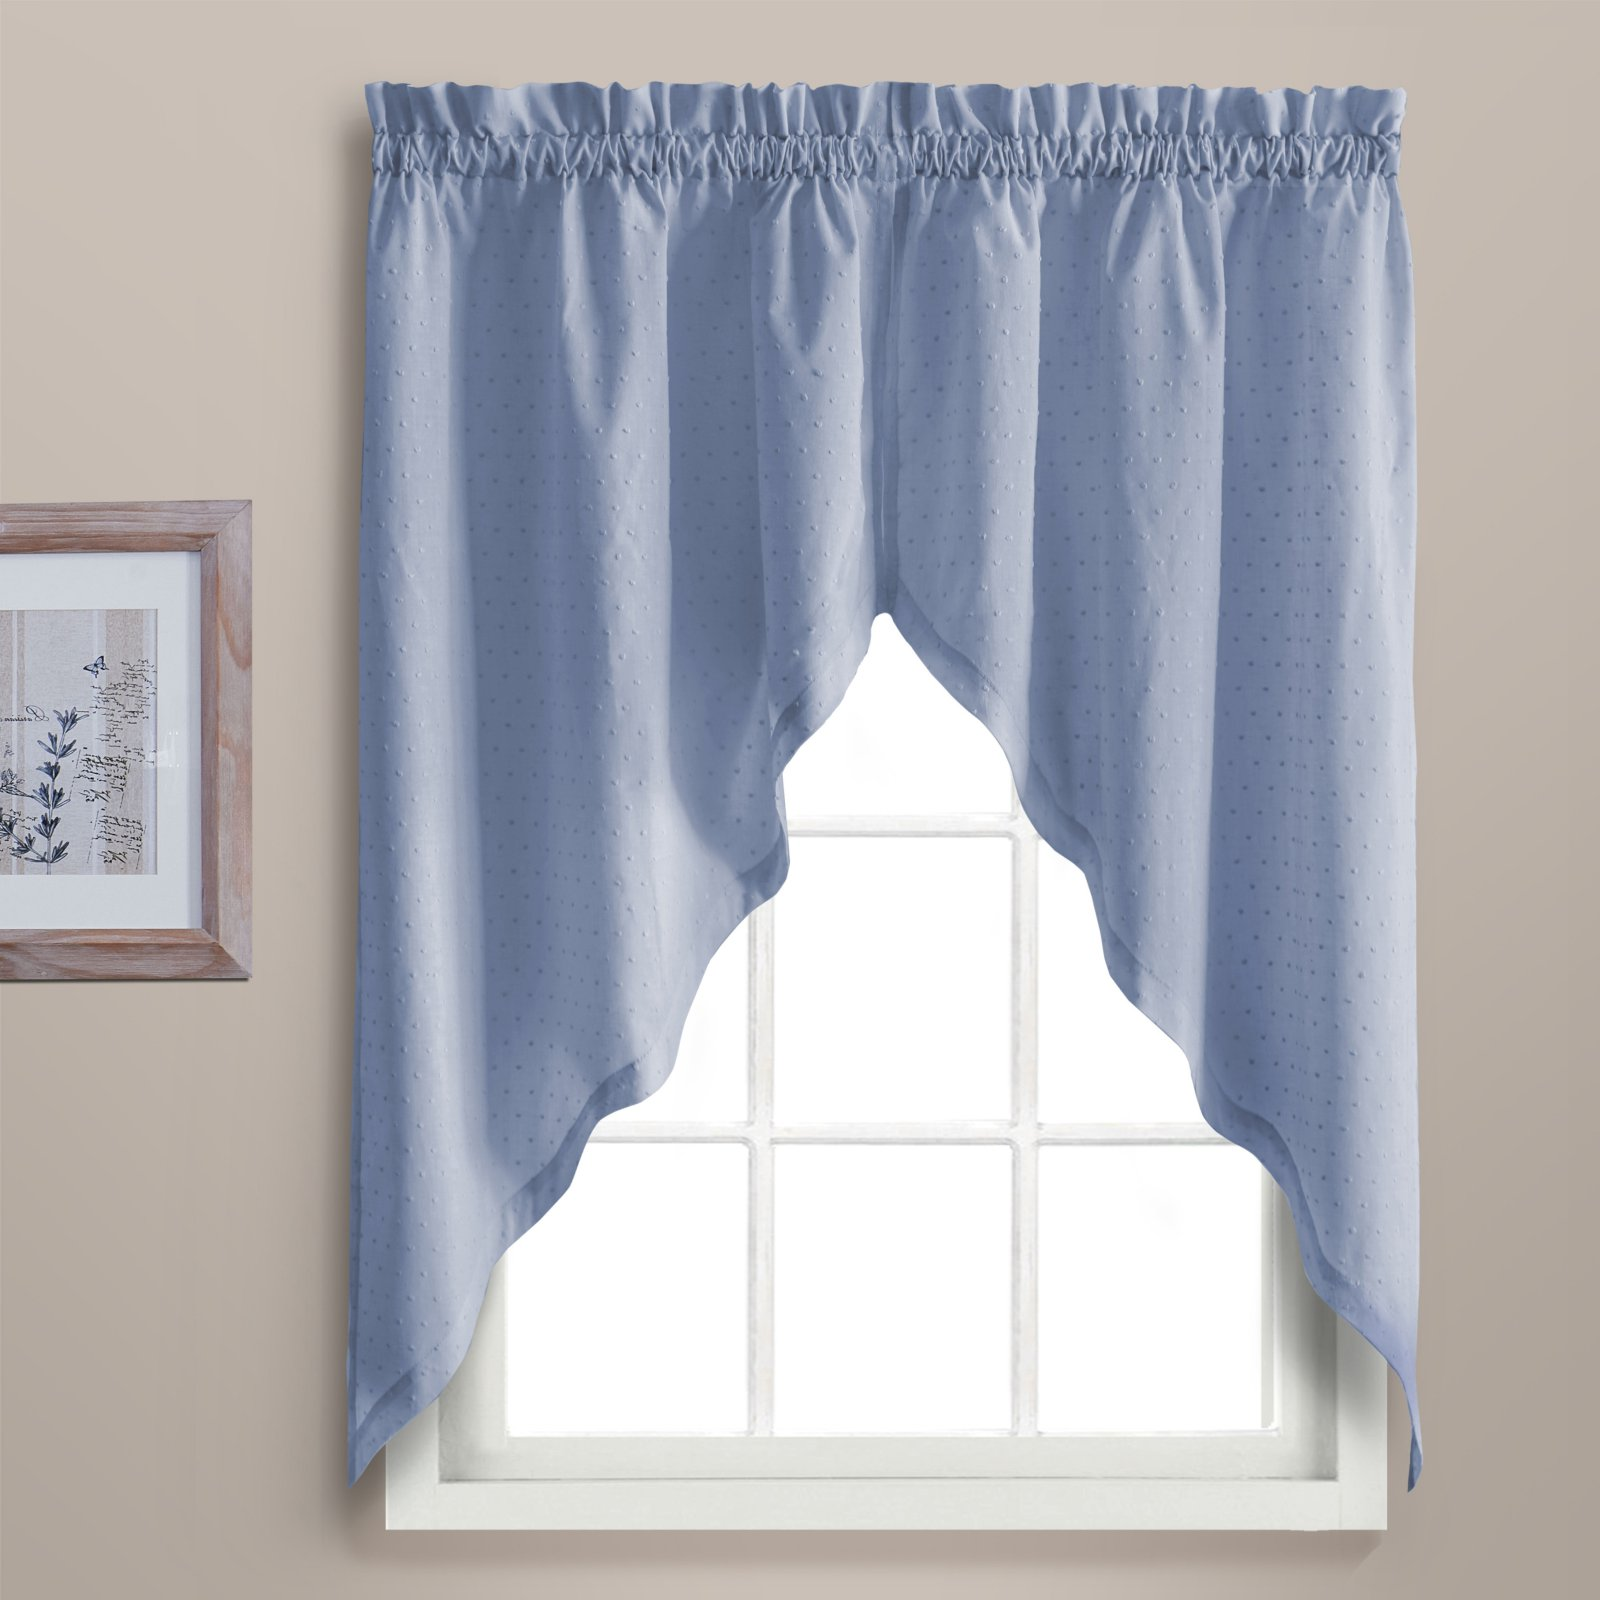 "DOROTHY 54"" X 24"" WINDOW CURTAIN CAFE KITCHEN TIER PAIR Blue"